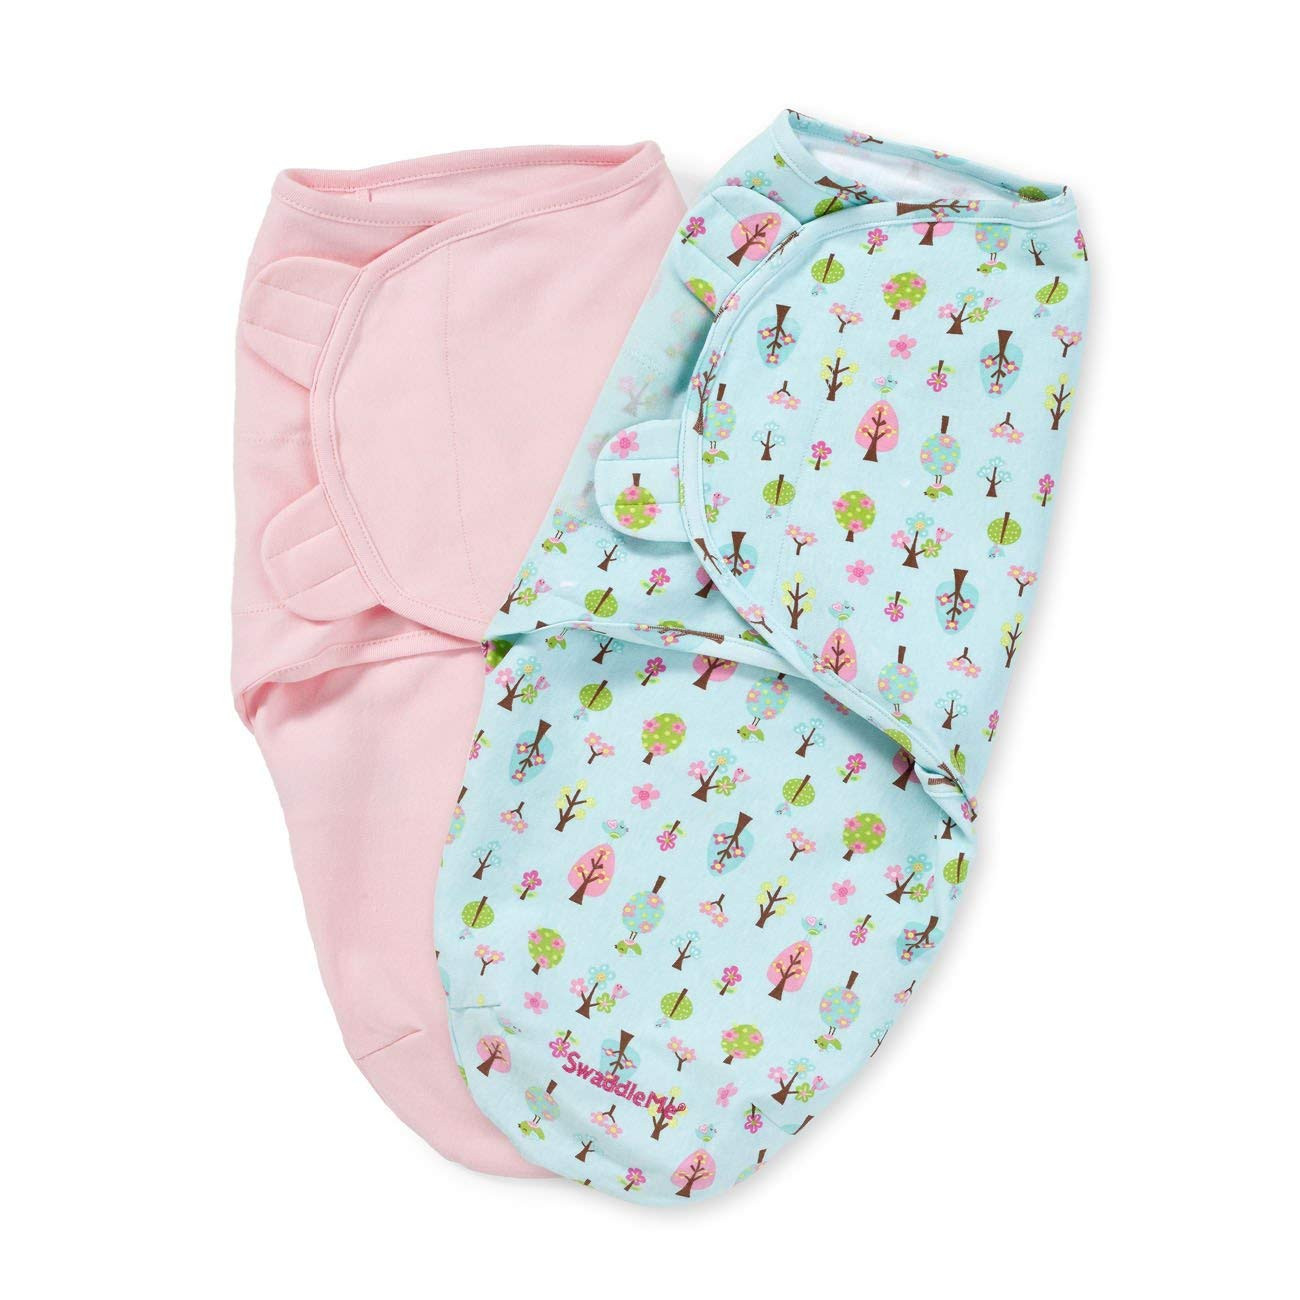 Best Of the top Swaddle Blanket Brands Re Mended by Real Moms Baby Blankets for Summer Of Gorgeous 48 Pictures Baby Blankets for Summer